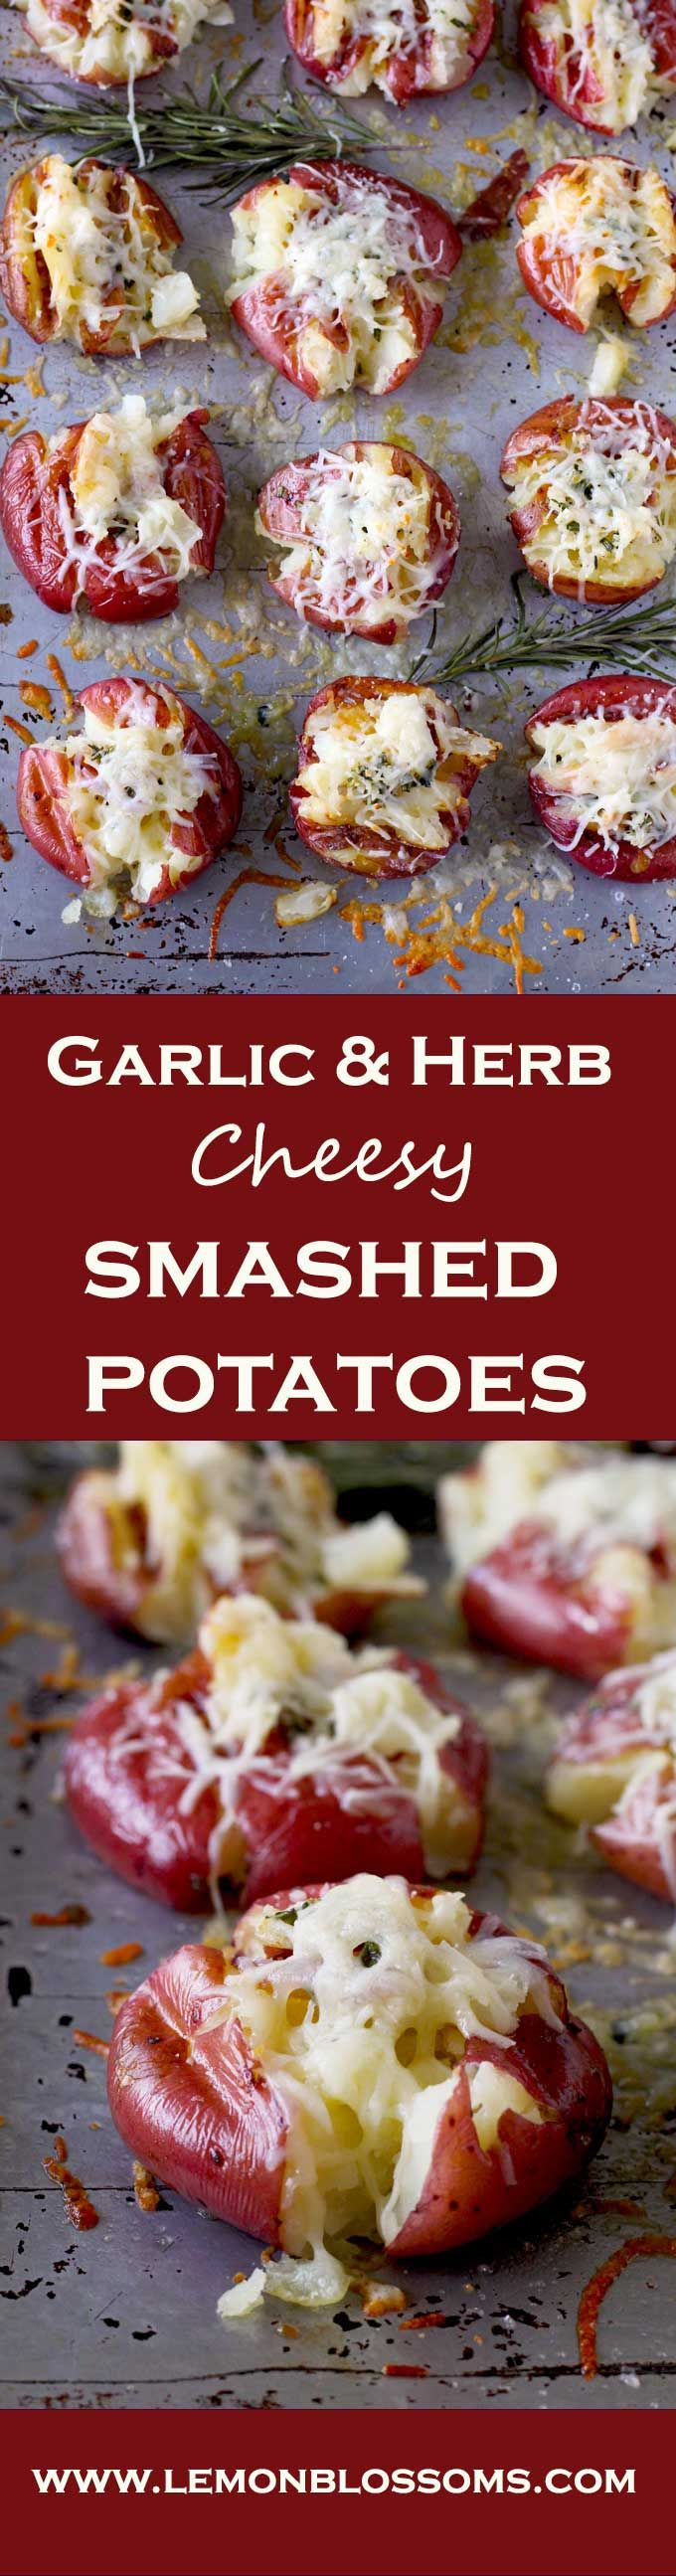 These Garlic & Herb Cheesy Smashed Roasted Potatoes are soft and creamy on the inside and crispy golden on the outside with a garlic and herb butter smashed in. To top it all, cheese! Yummy, gooey, melted cheese!! These are perfect as a side dish or as an appetizer. via @https://www.pinterest.com/lmnblossoms/